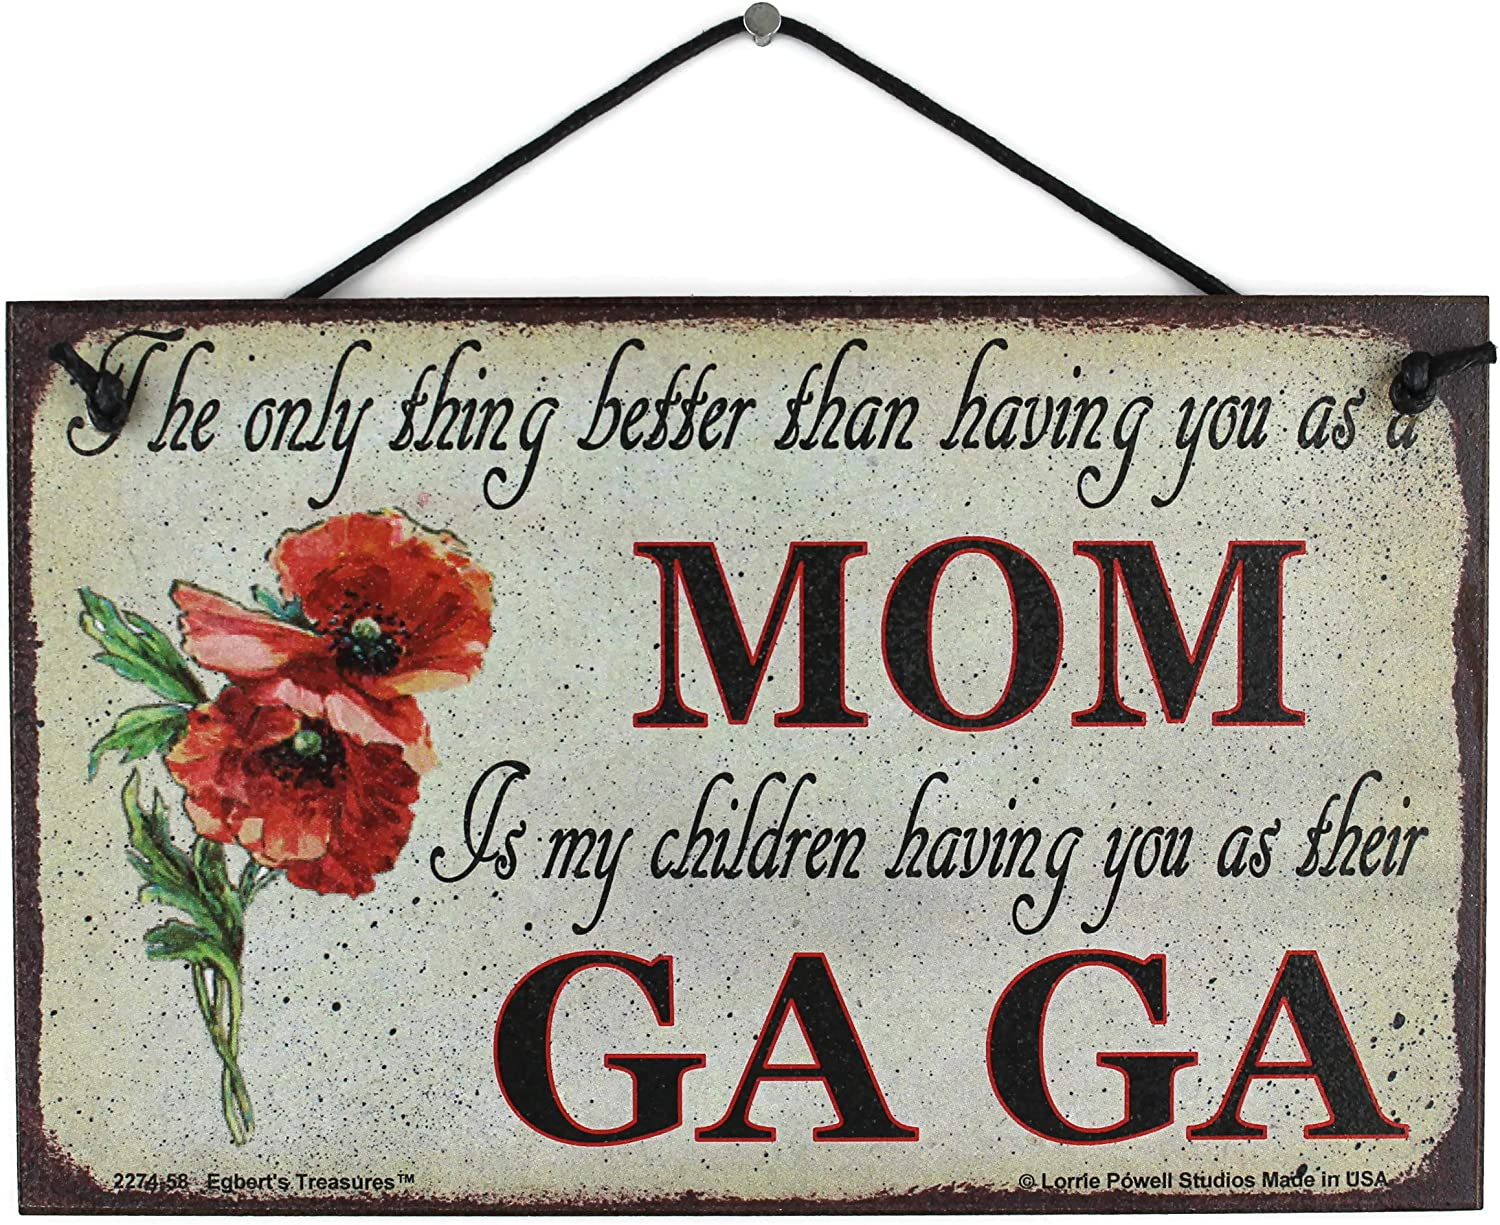 5x8 Vintage Style Sign with Poppy Saying only